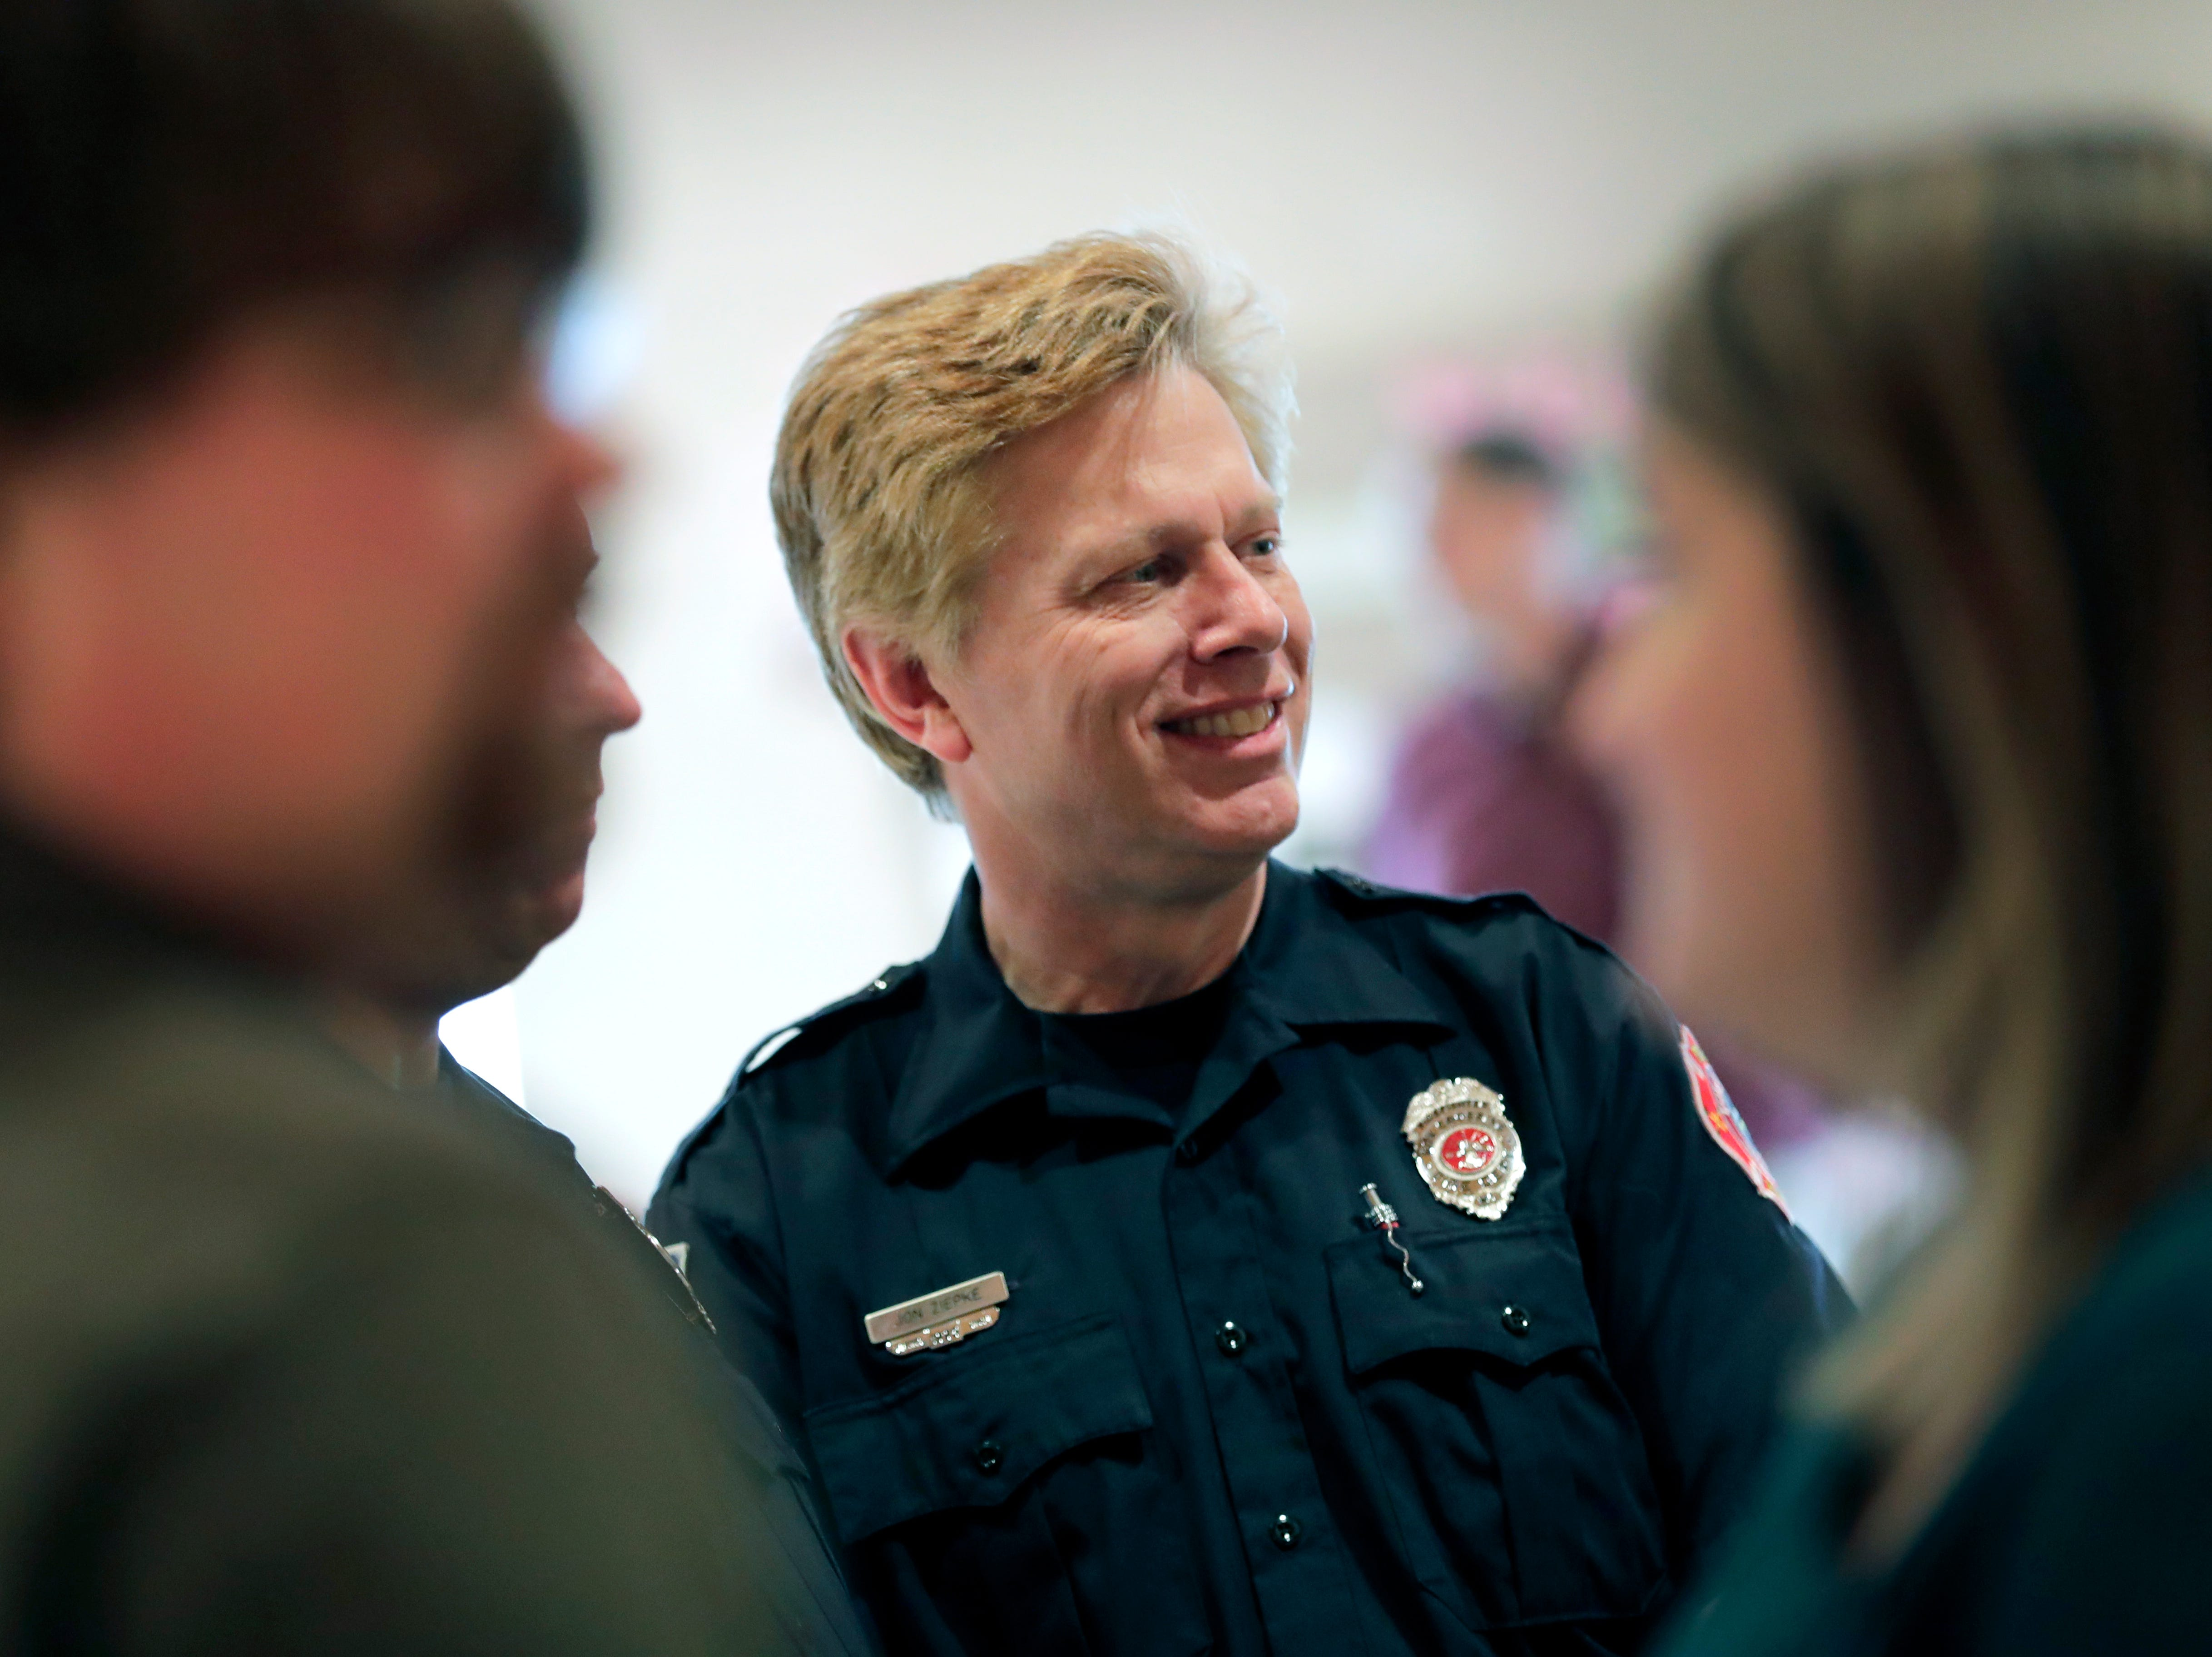 John Ziebke, a firefighter with the Fox Crossing Fire Department, talks with other responders during the I-41 Mass Casualty Incident of Feb. 24, 2019 Recognition Event Tuesday, April 16, 2019, at Gloria Dei Lutheran Church in Neenah, Wis. Dan Powers/USA TODAY NETWORK-Wisconsin